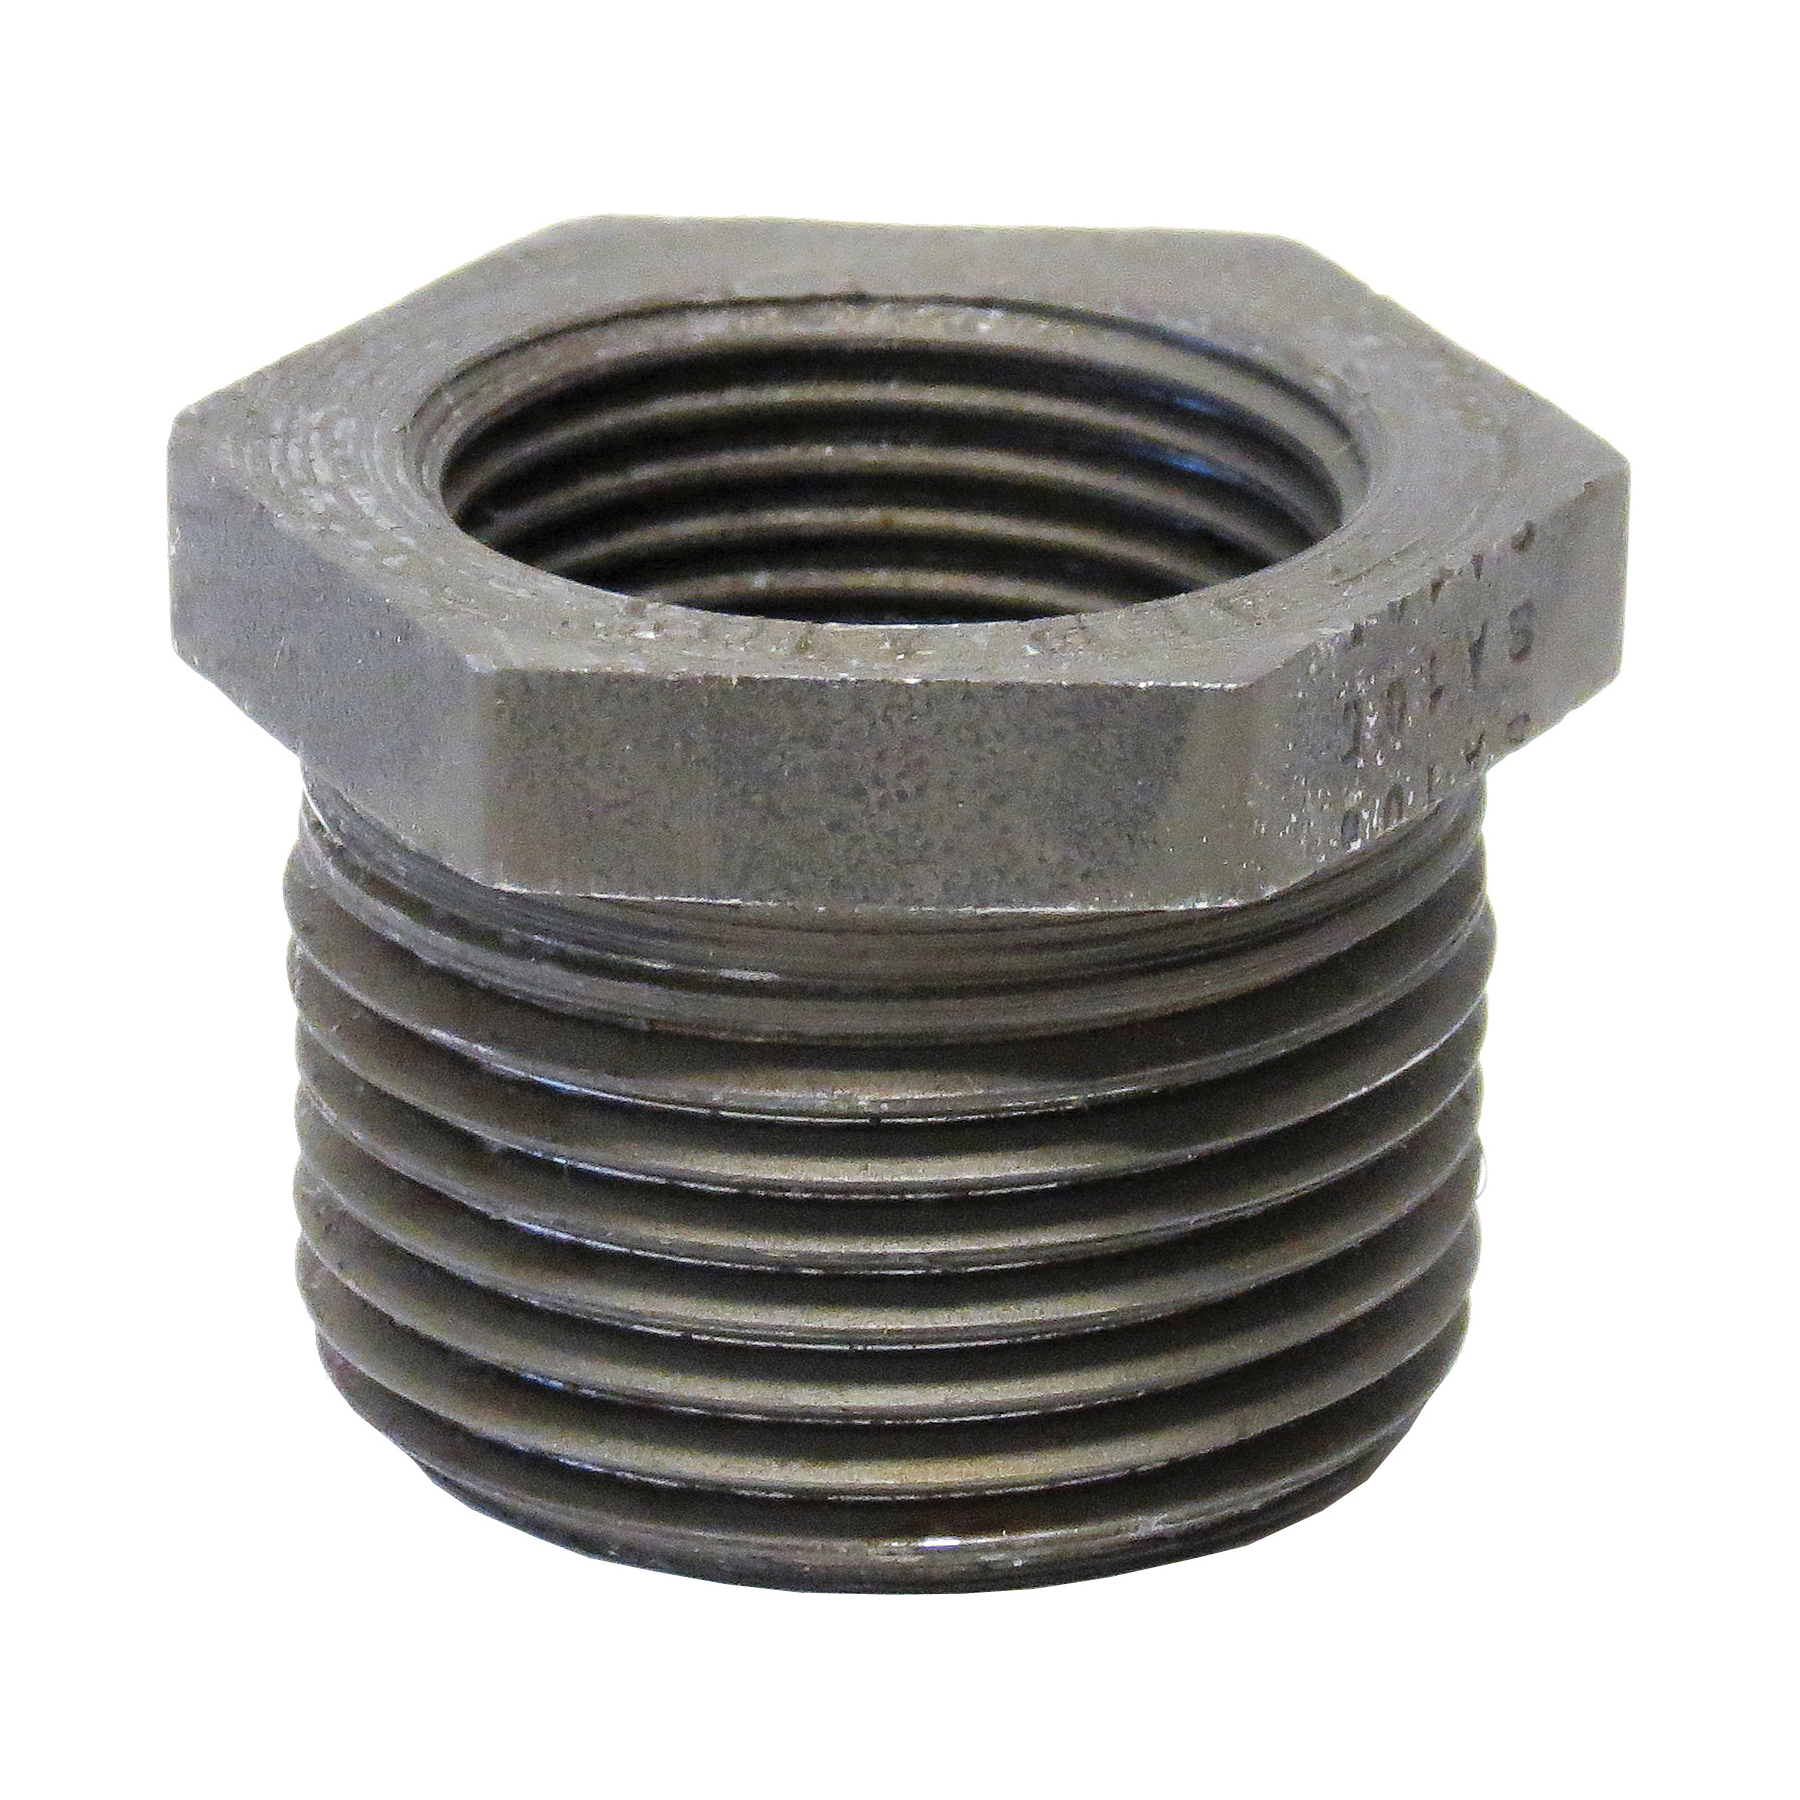 Anvil® 0361330806 FIG 2139 Hex Head Pipe Bushing, 3/4 x 3/8 in, FNPT x MNPT, 3000 lb, Steel, Domestic